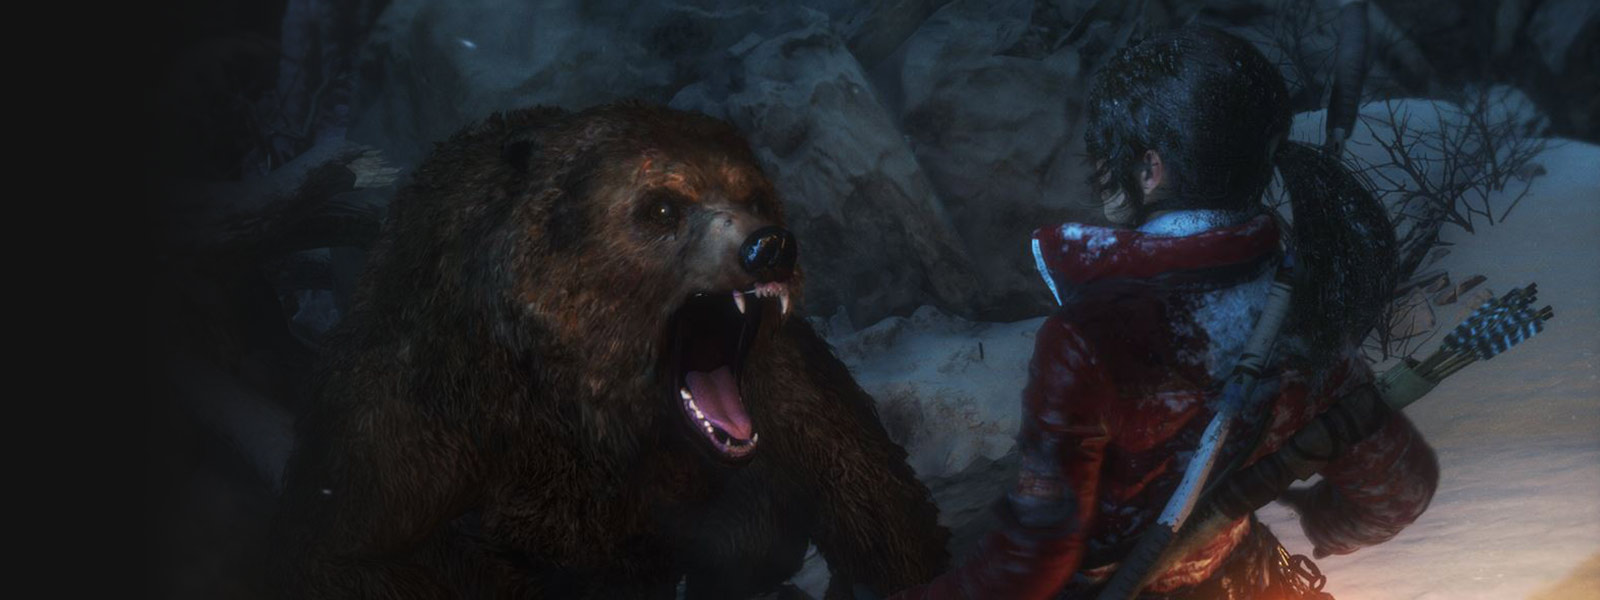 Lara encountering a large grizzly bear